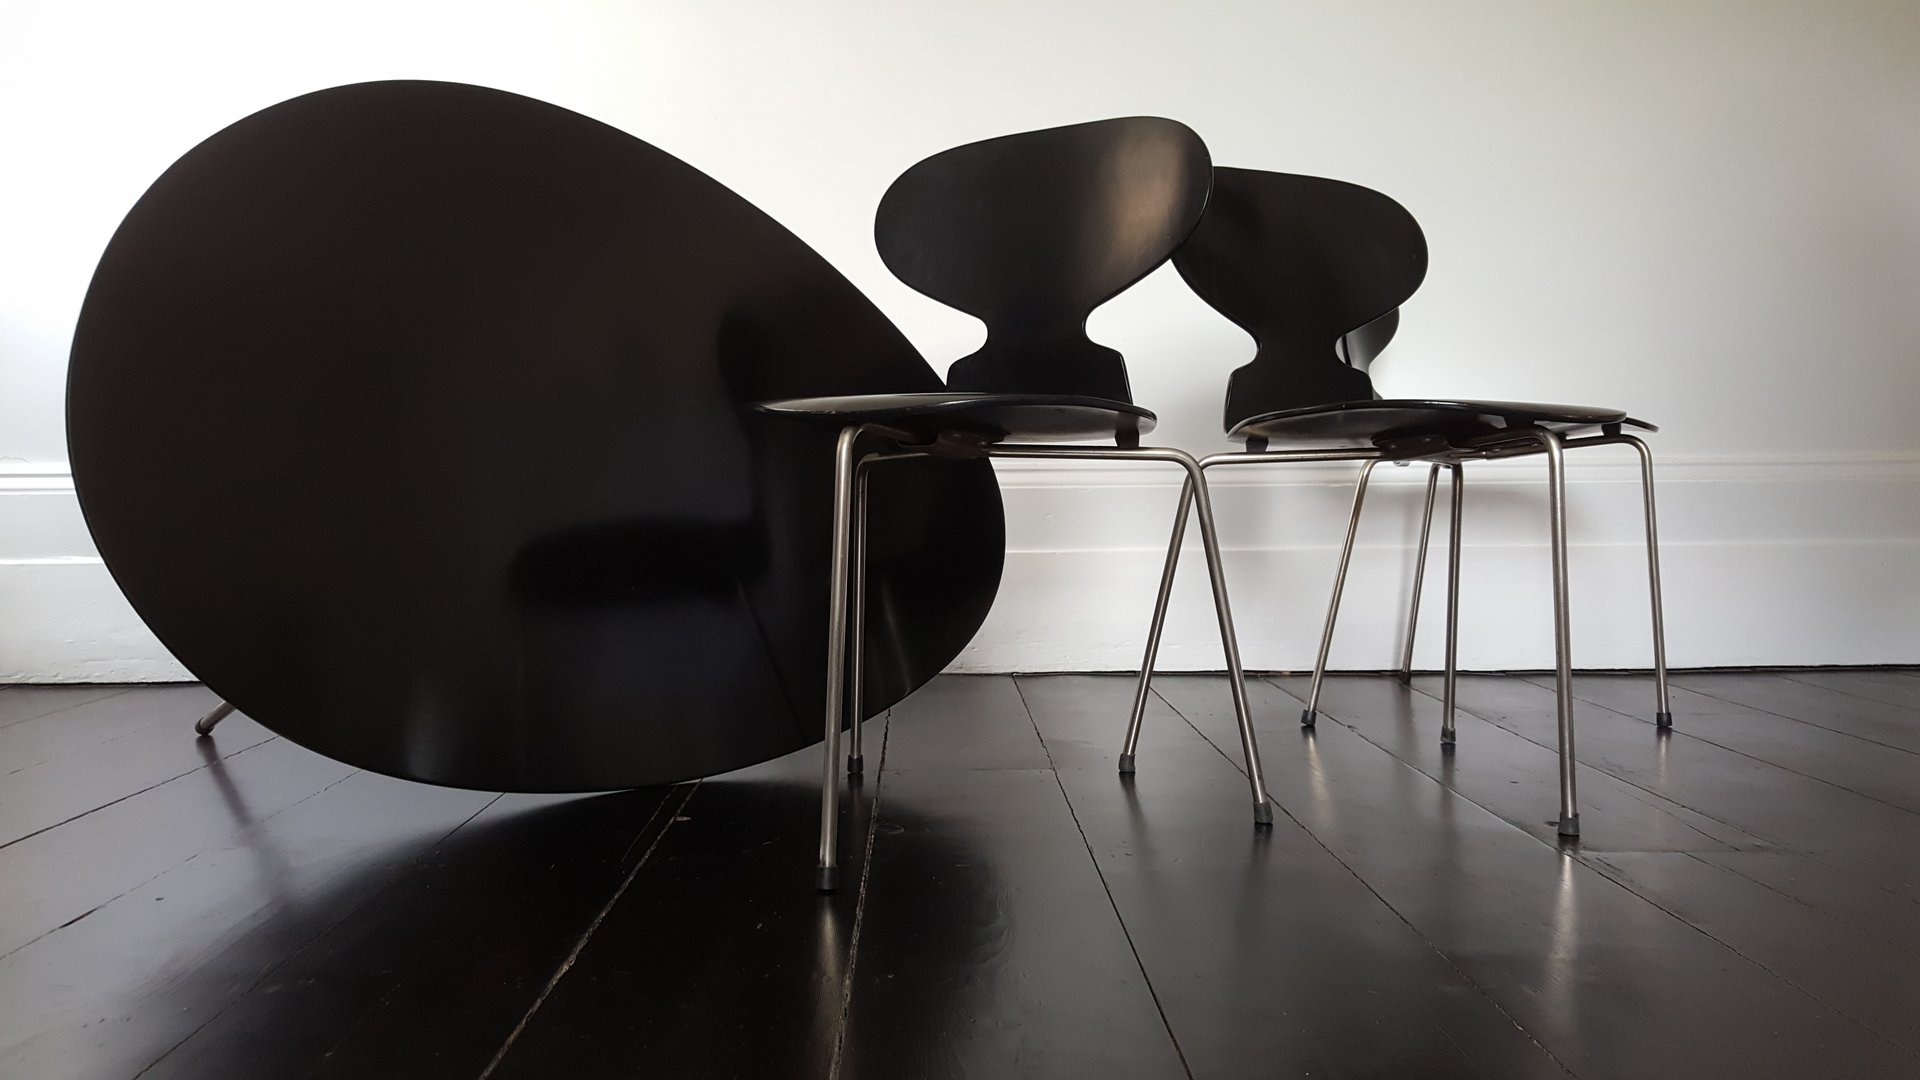 egg tisch ant st hle esszimmer set von arne jacobsen f r fritz hansen 1950er bei pamono kaufen. Black Bedroom Furniture Sets. Home Design Ideas